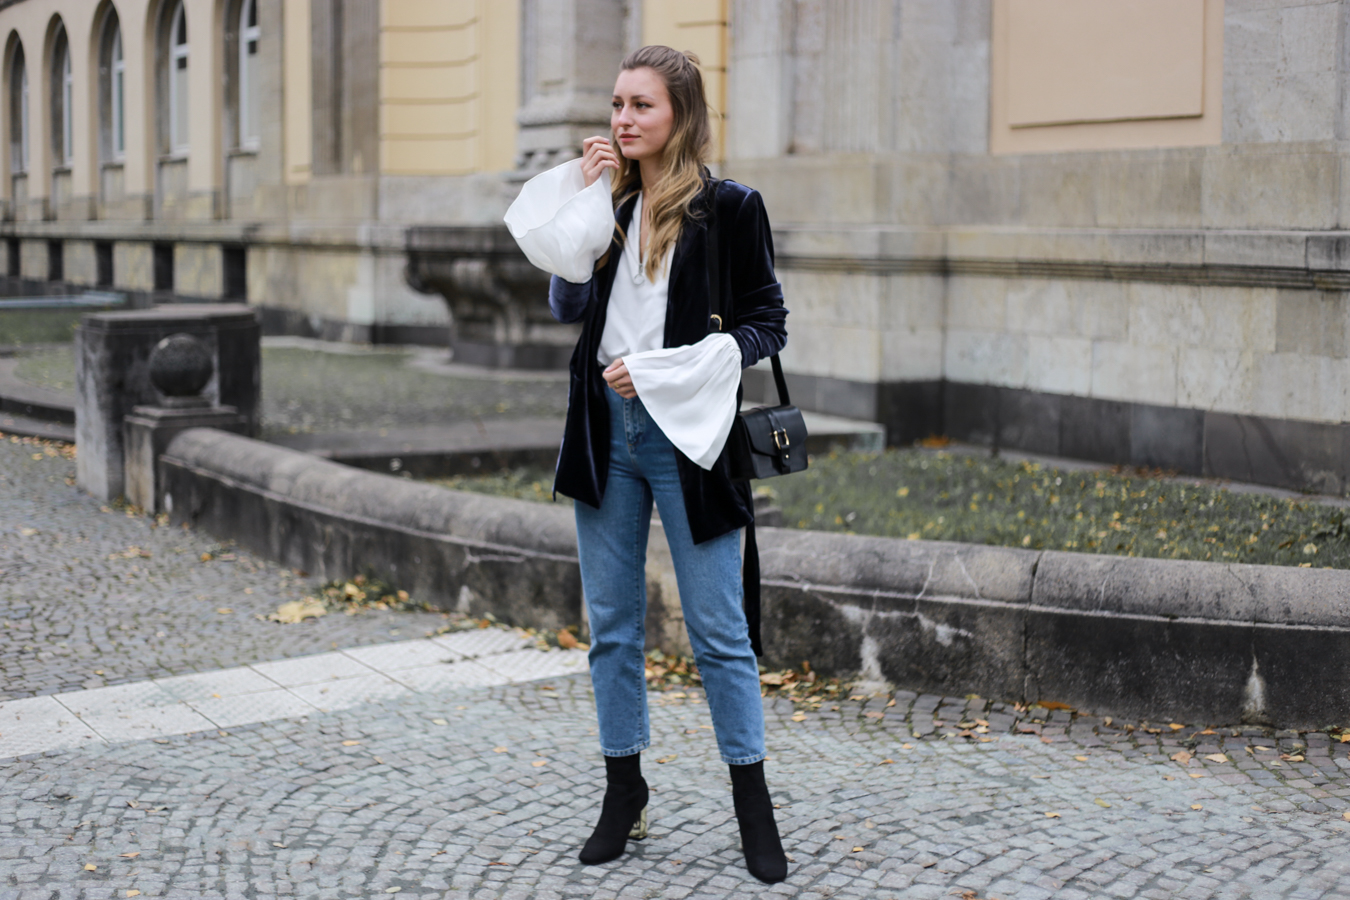 other-stories-velvet-mom-jeans-outfit-livia-auer-6832